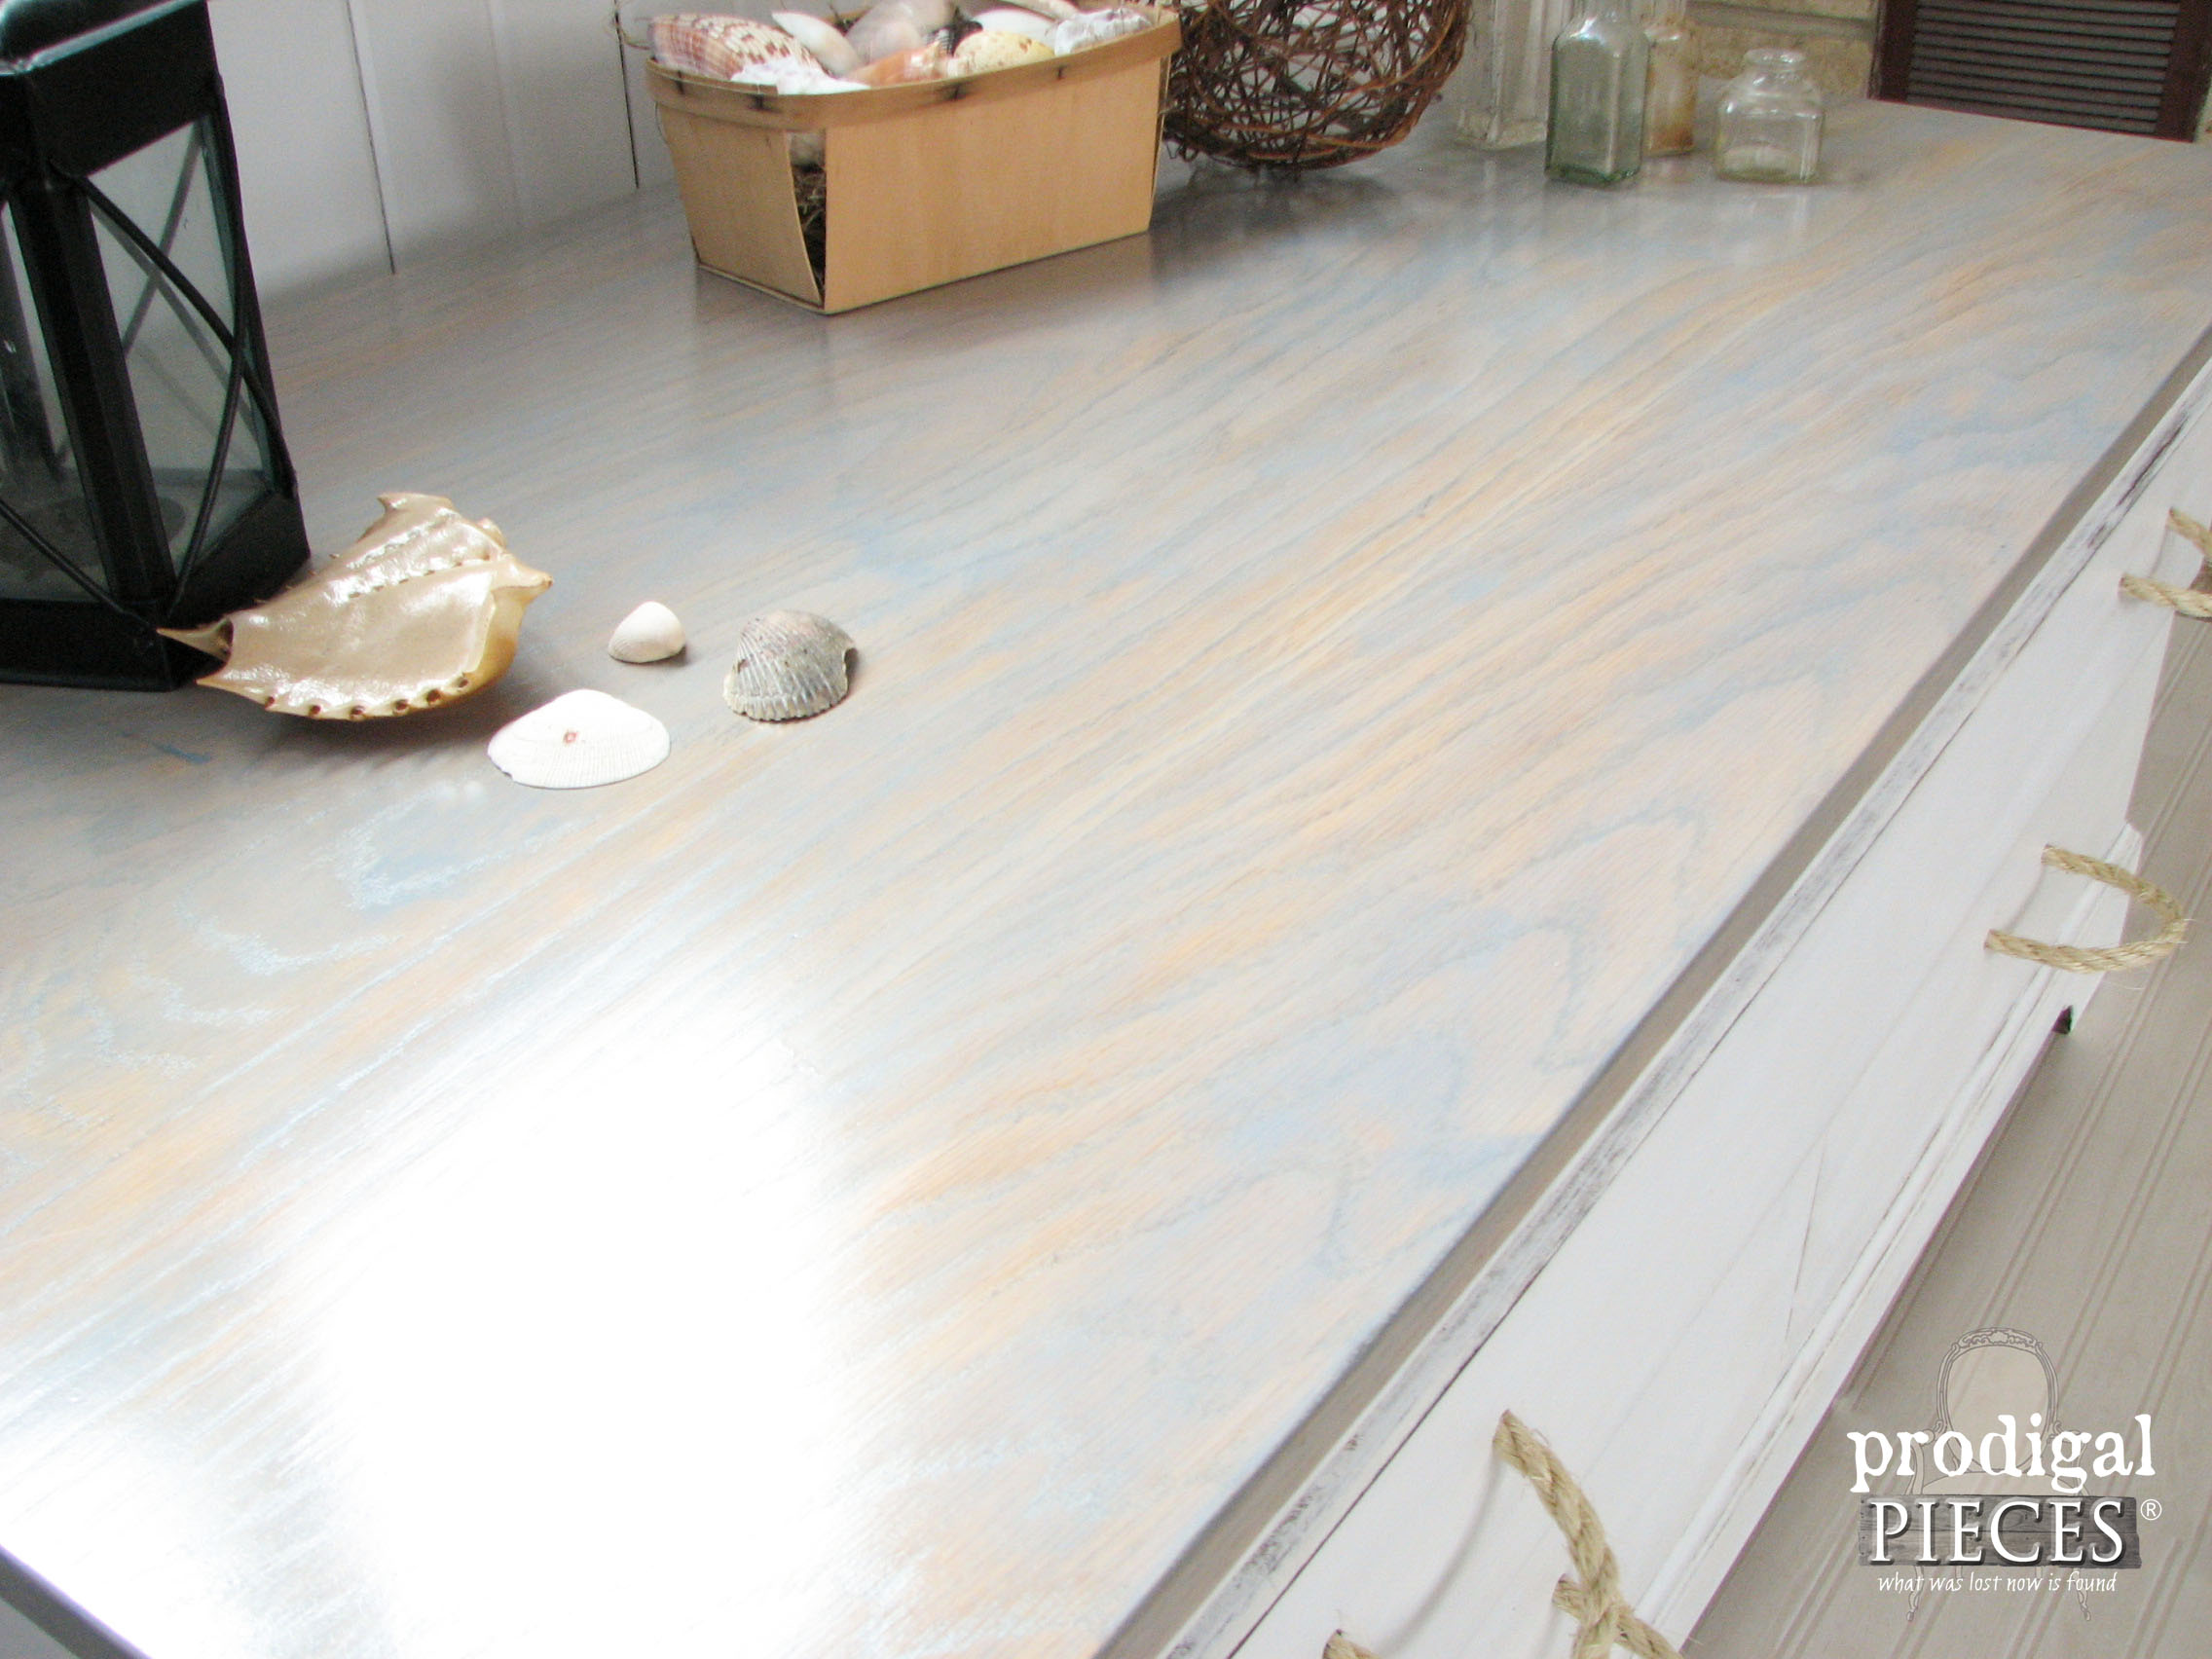 Sunbleached Coffee Table Top by Prodigal Pieces | www.prodigalpieces.com